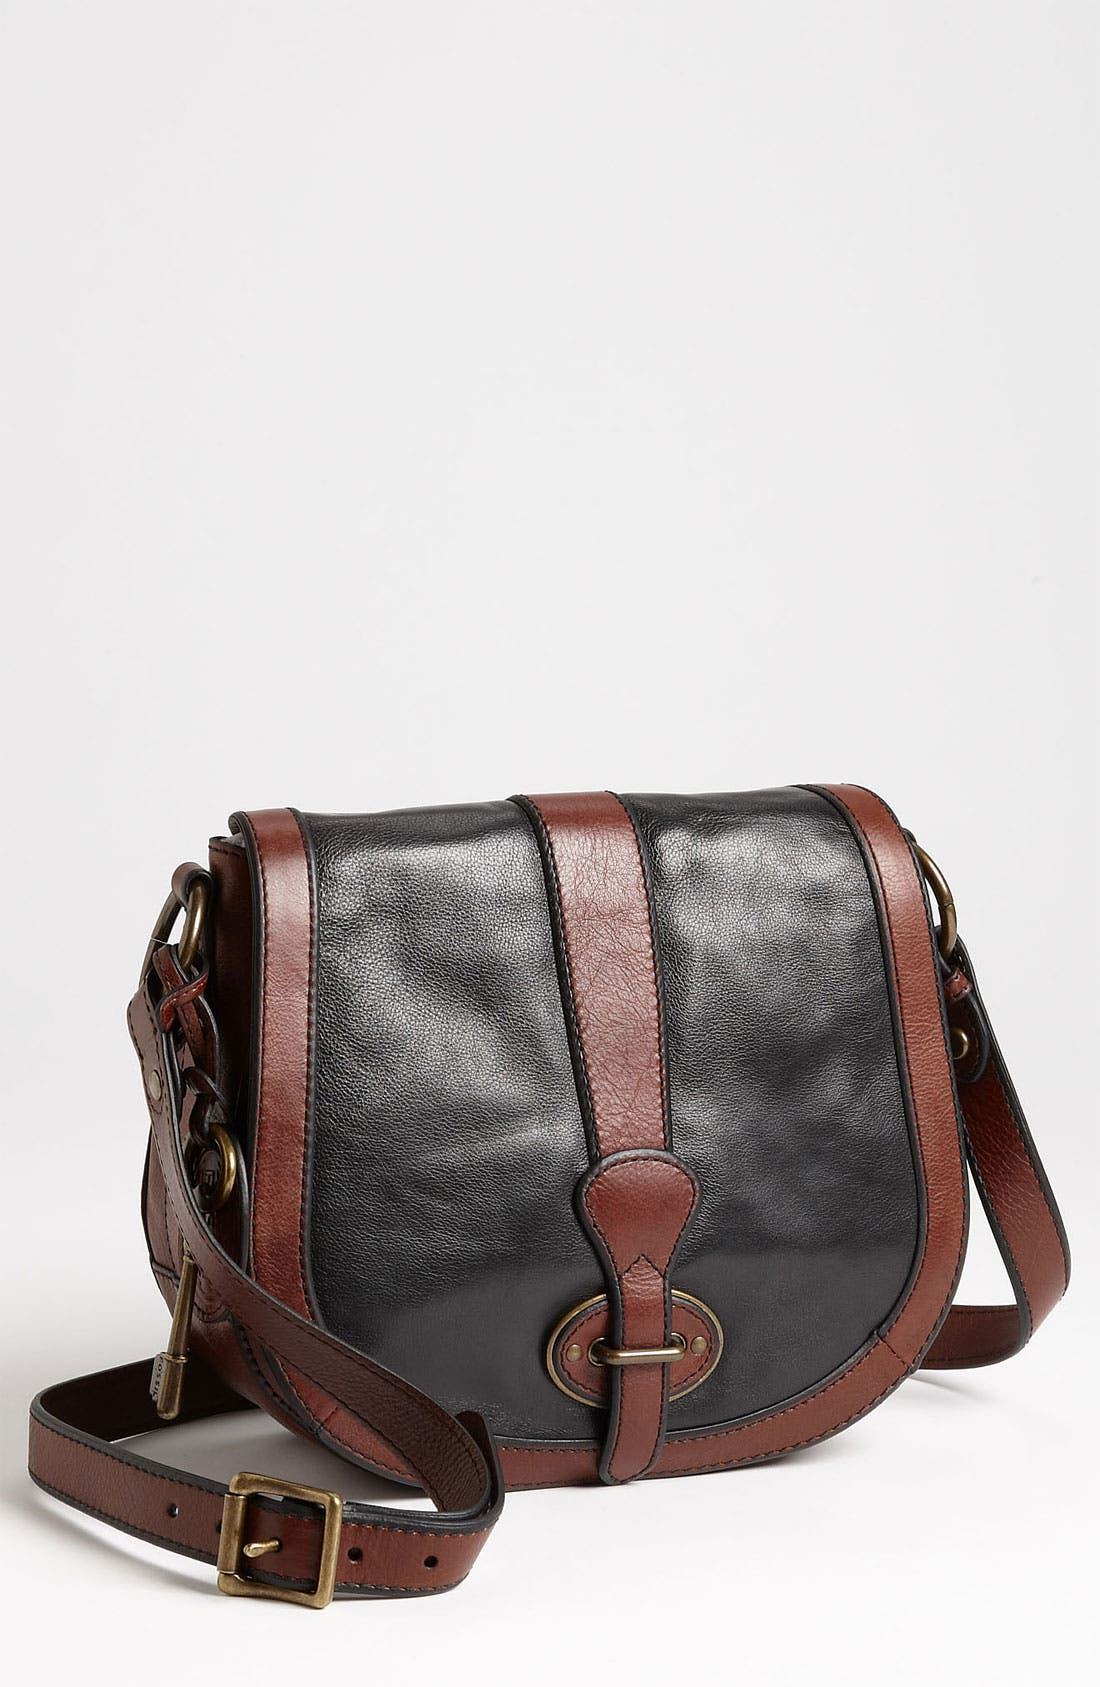 Main Image - Fossil 'Vintage Re-Issue' Crossbody Bag